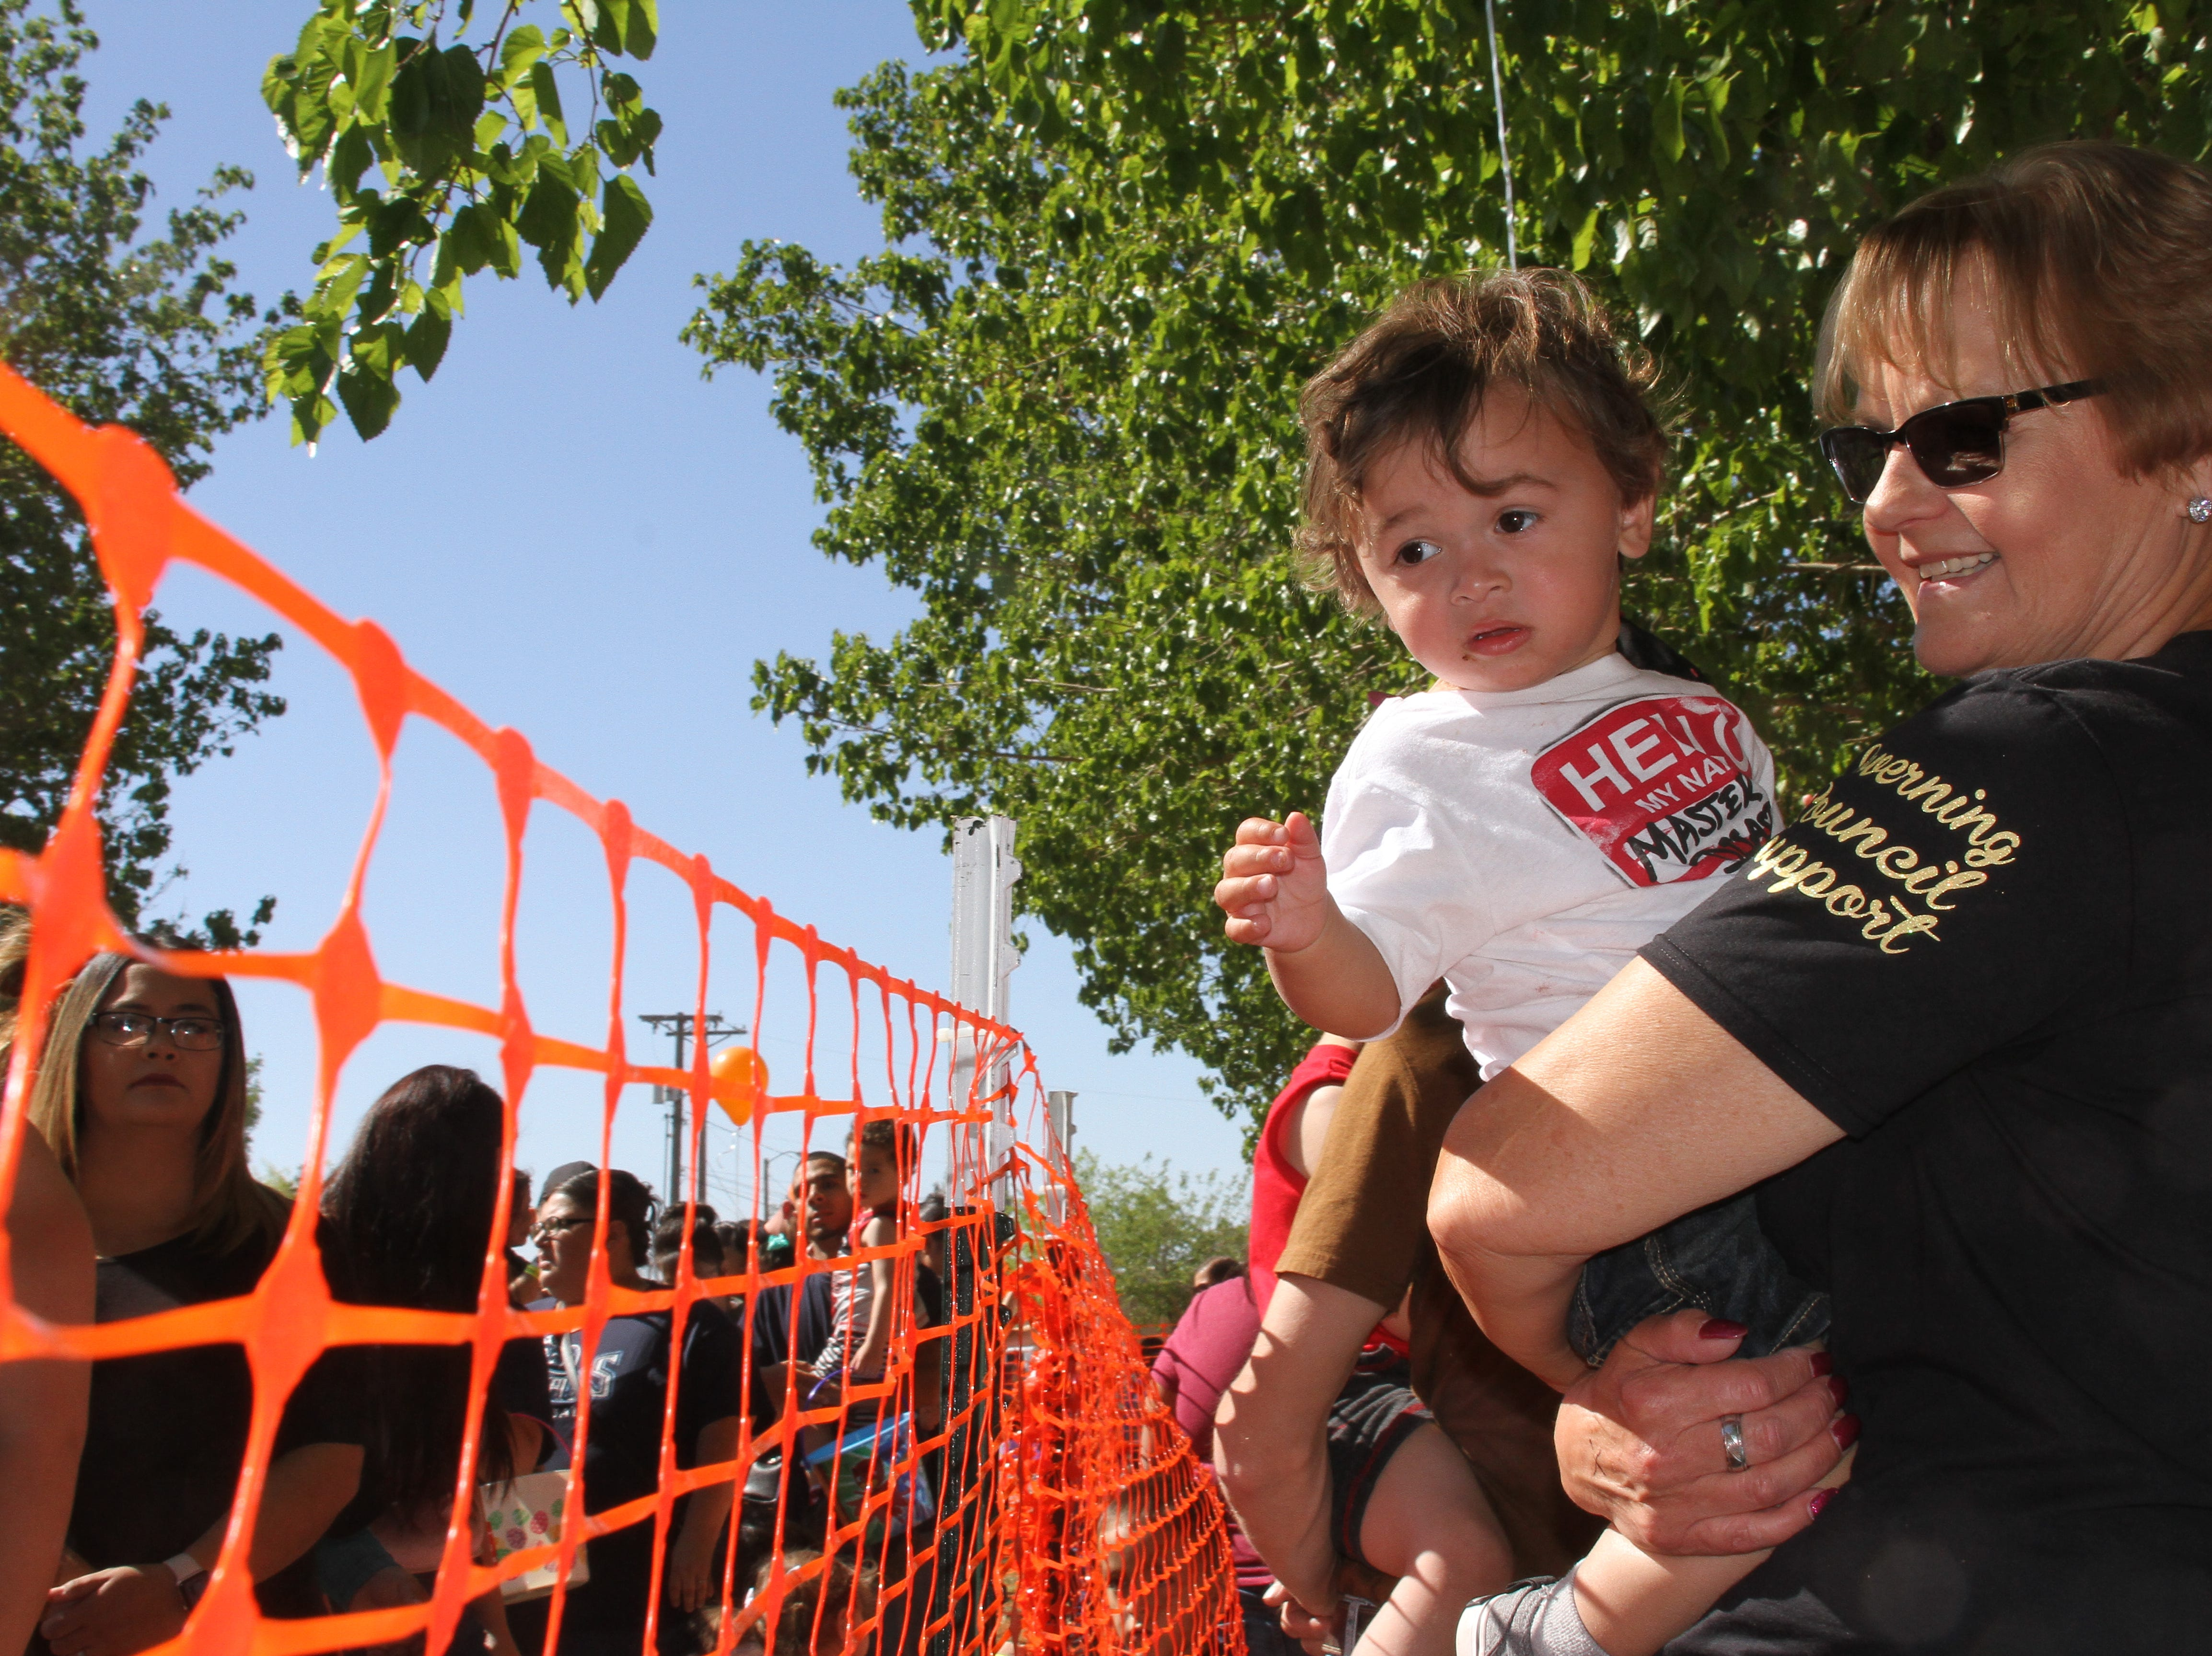 Families line up according to age. Here, 1-year-old Zeiondre Rubalcaba and grandma are waiting to hunt for some eggs.